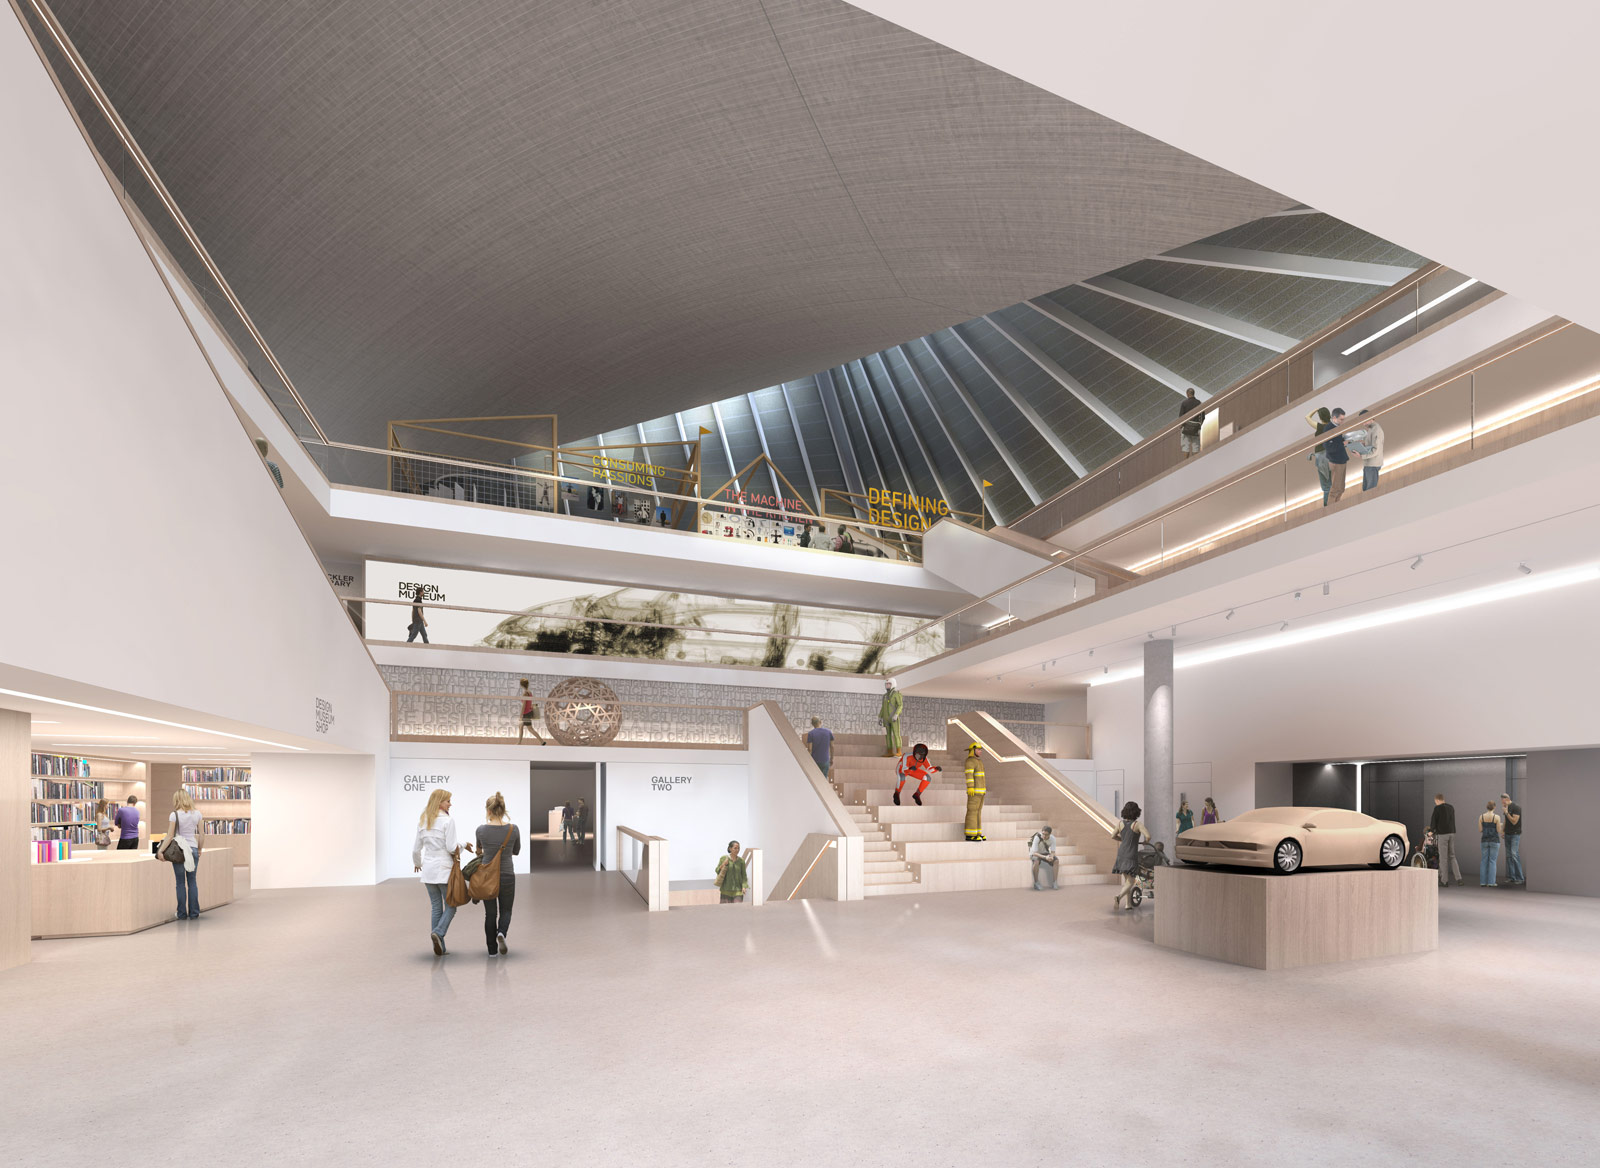 A render of the ground floor at the new Kensington location for the Design Museum. Image by Alex Morris Visualisation